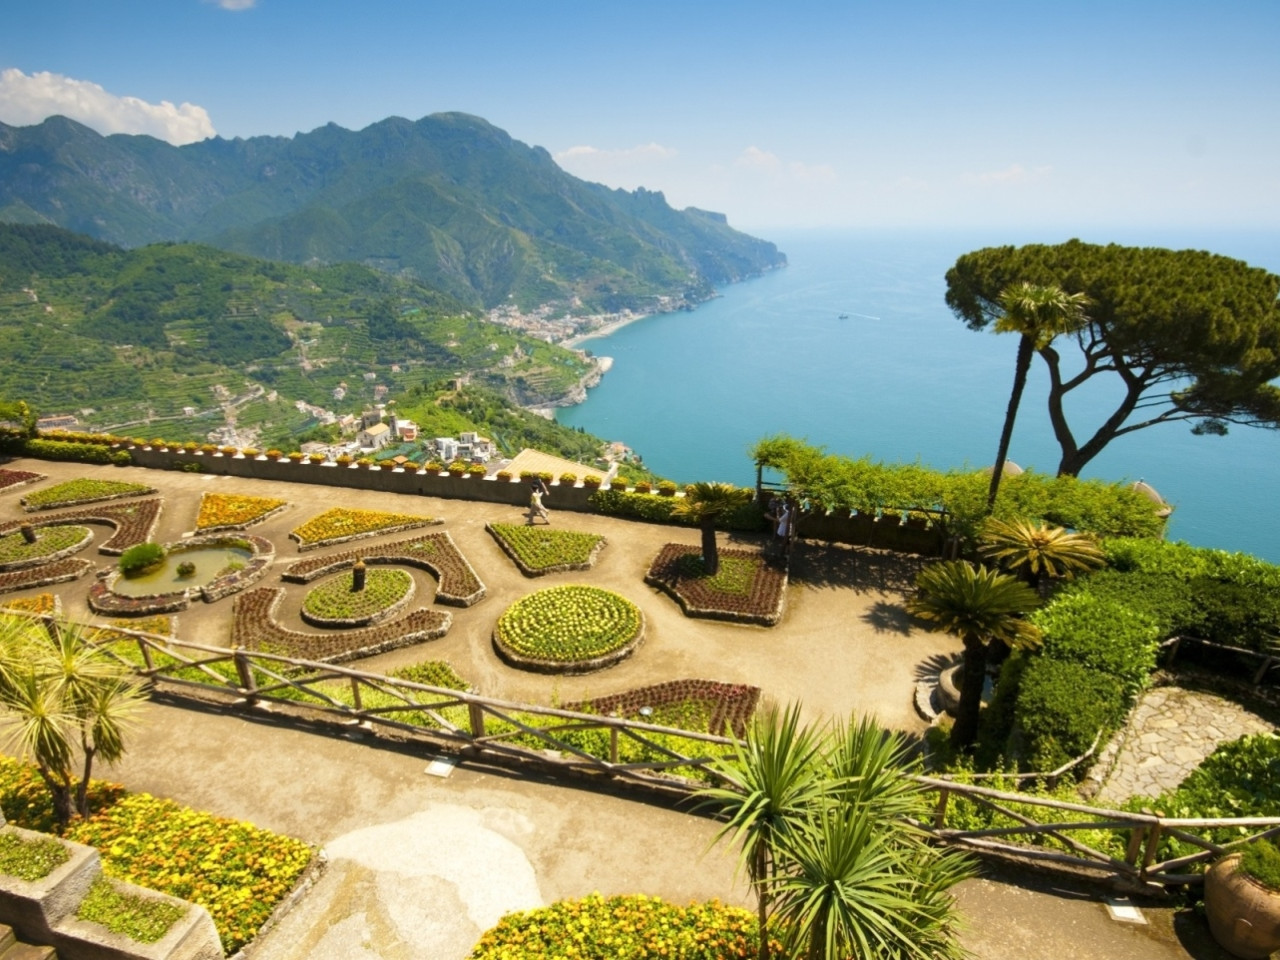 Positano, Amalfi & Ravello - from Naples